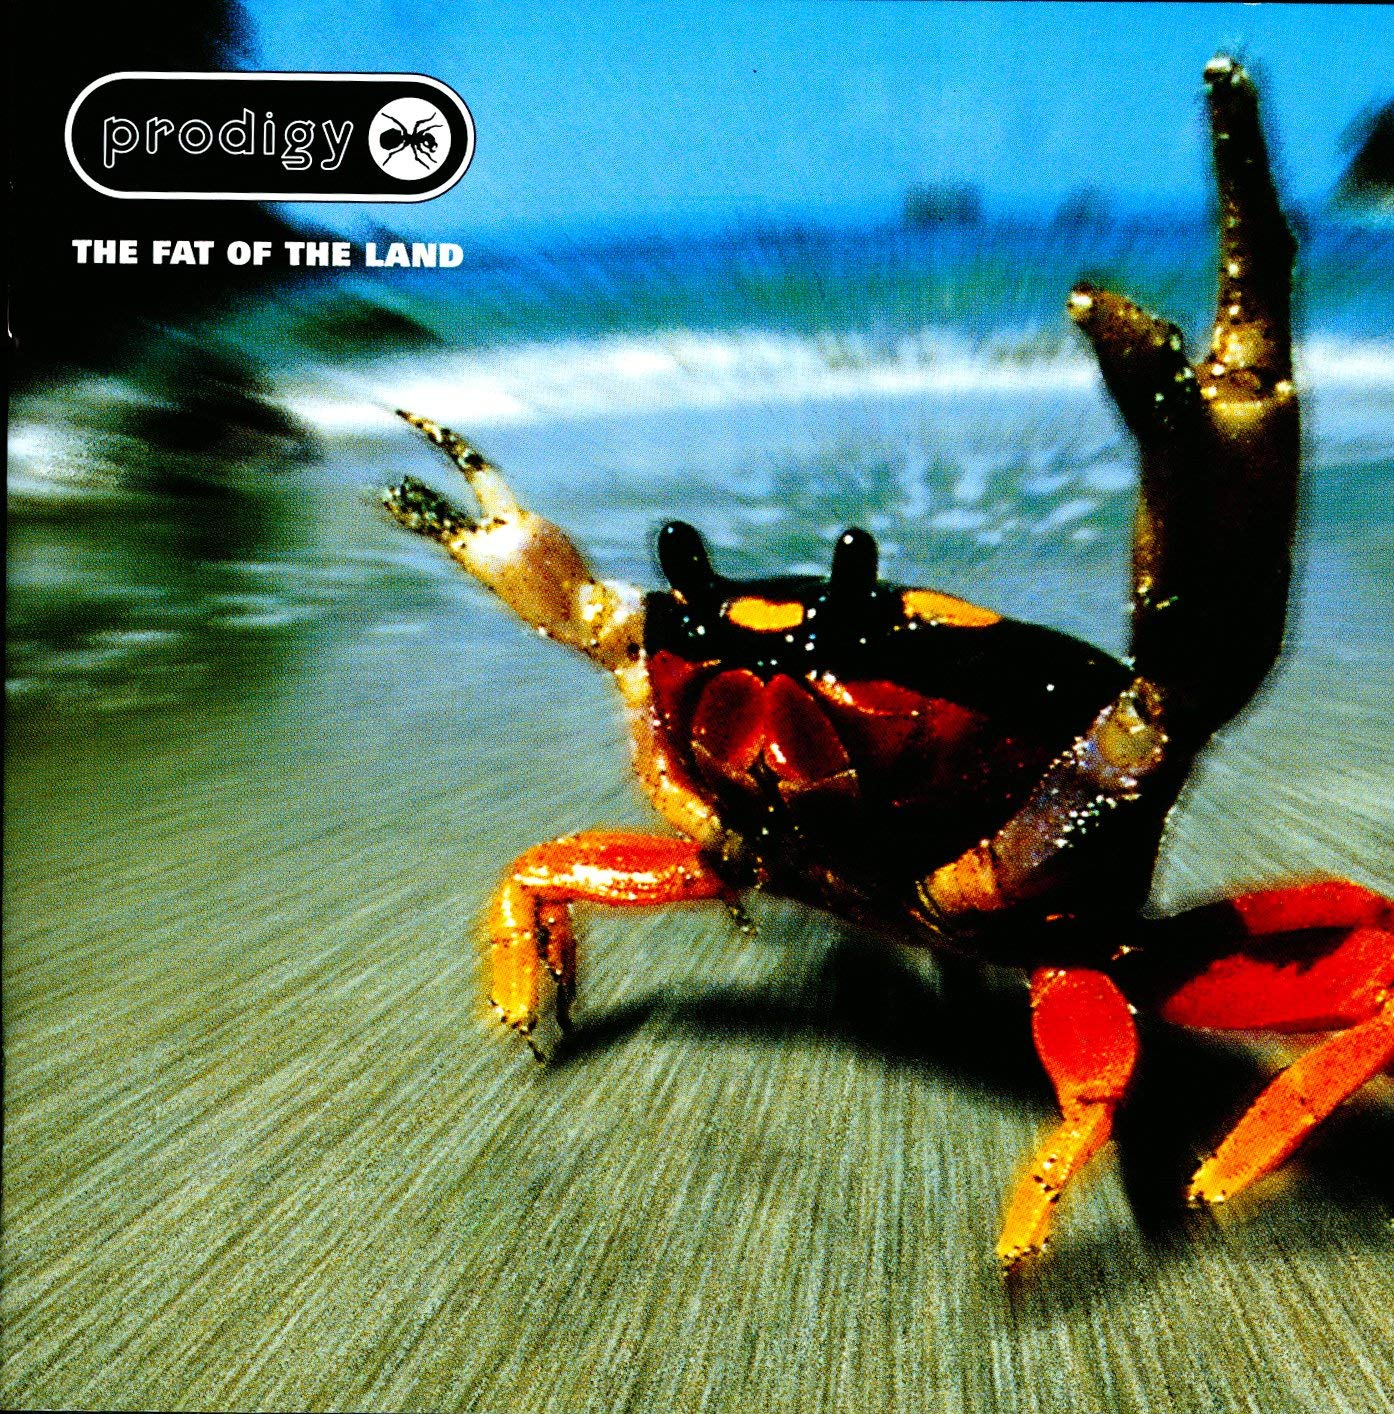 The Fat Of The Land: The Prodigy: Amazon.es: CDs y vinilos}